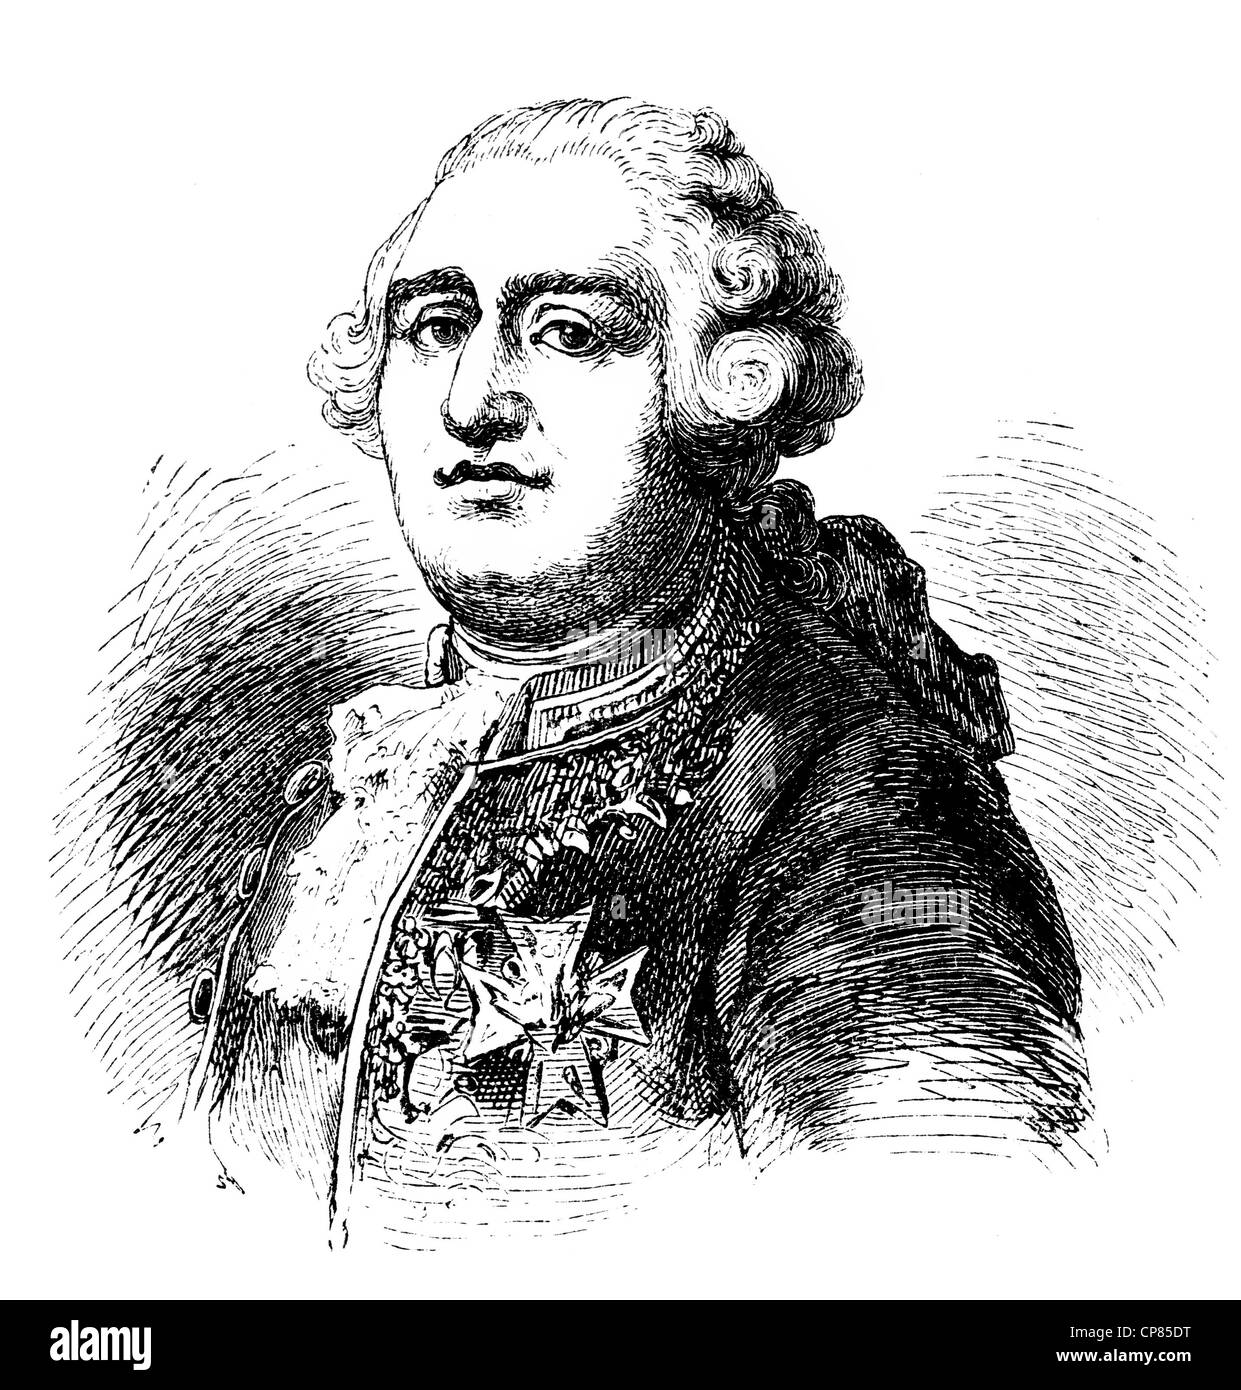 Louis XVI. Augustus of France, 1754 - 1793, King of France and Navarre, French Revolution, historical engraving, Stock Photo